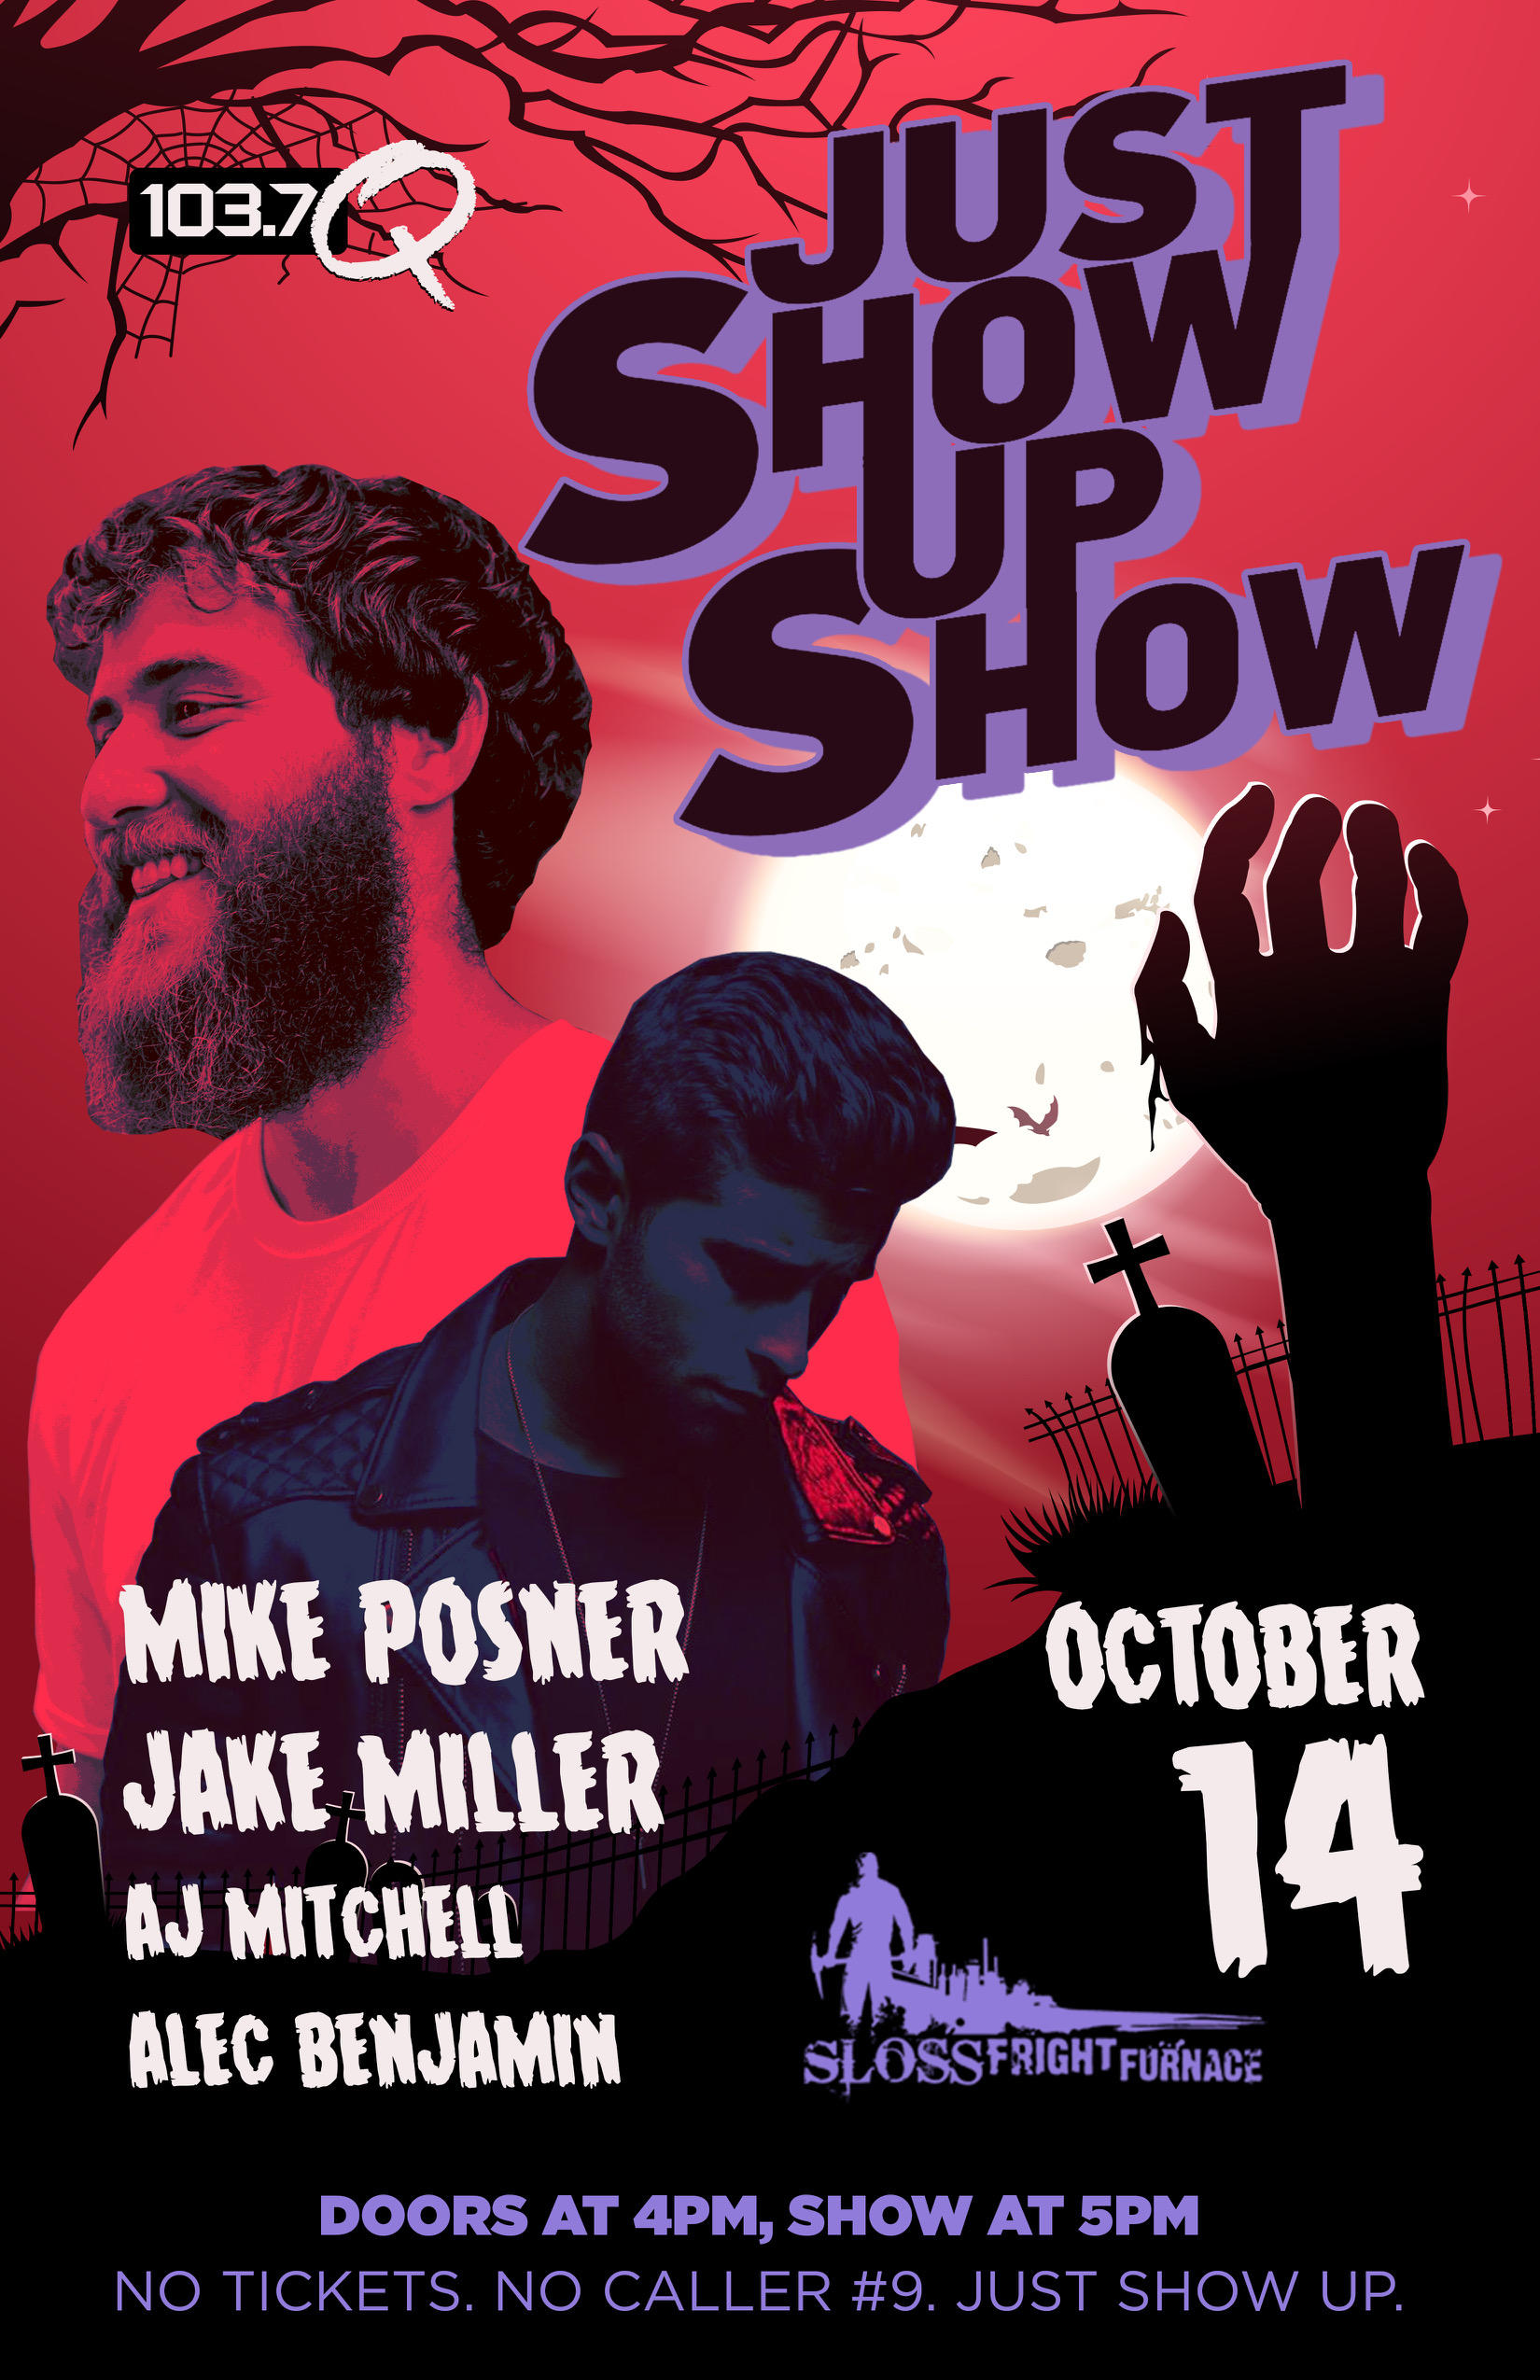 103.7 The Q - Just Show Up Show - October 14, 2018